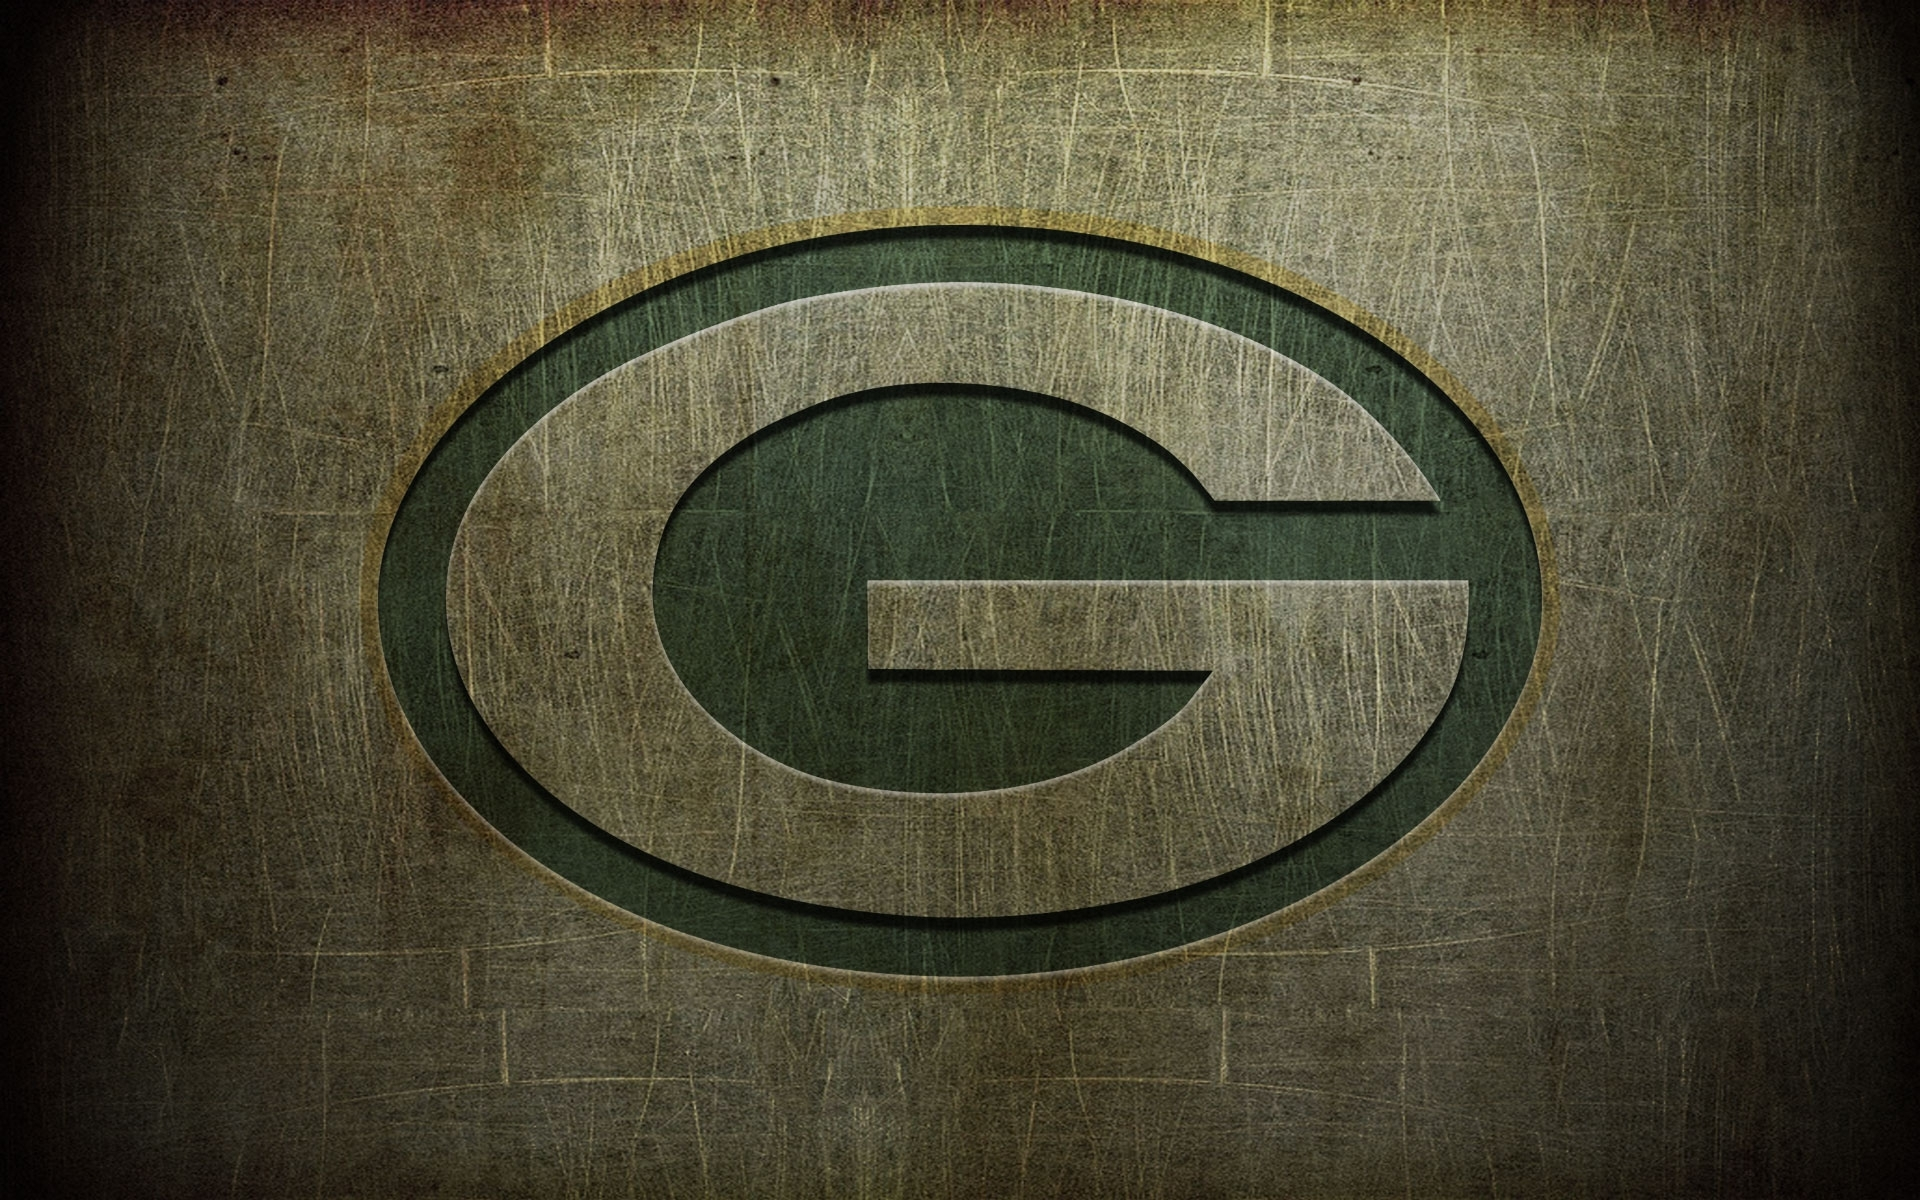 green bay packers wallpapers and background images - stmed